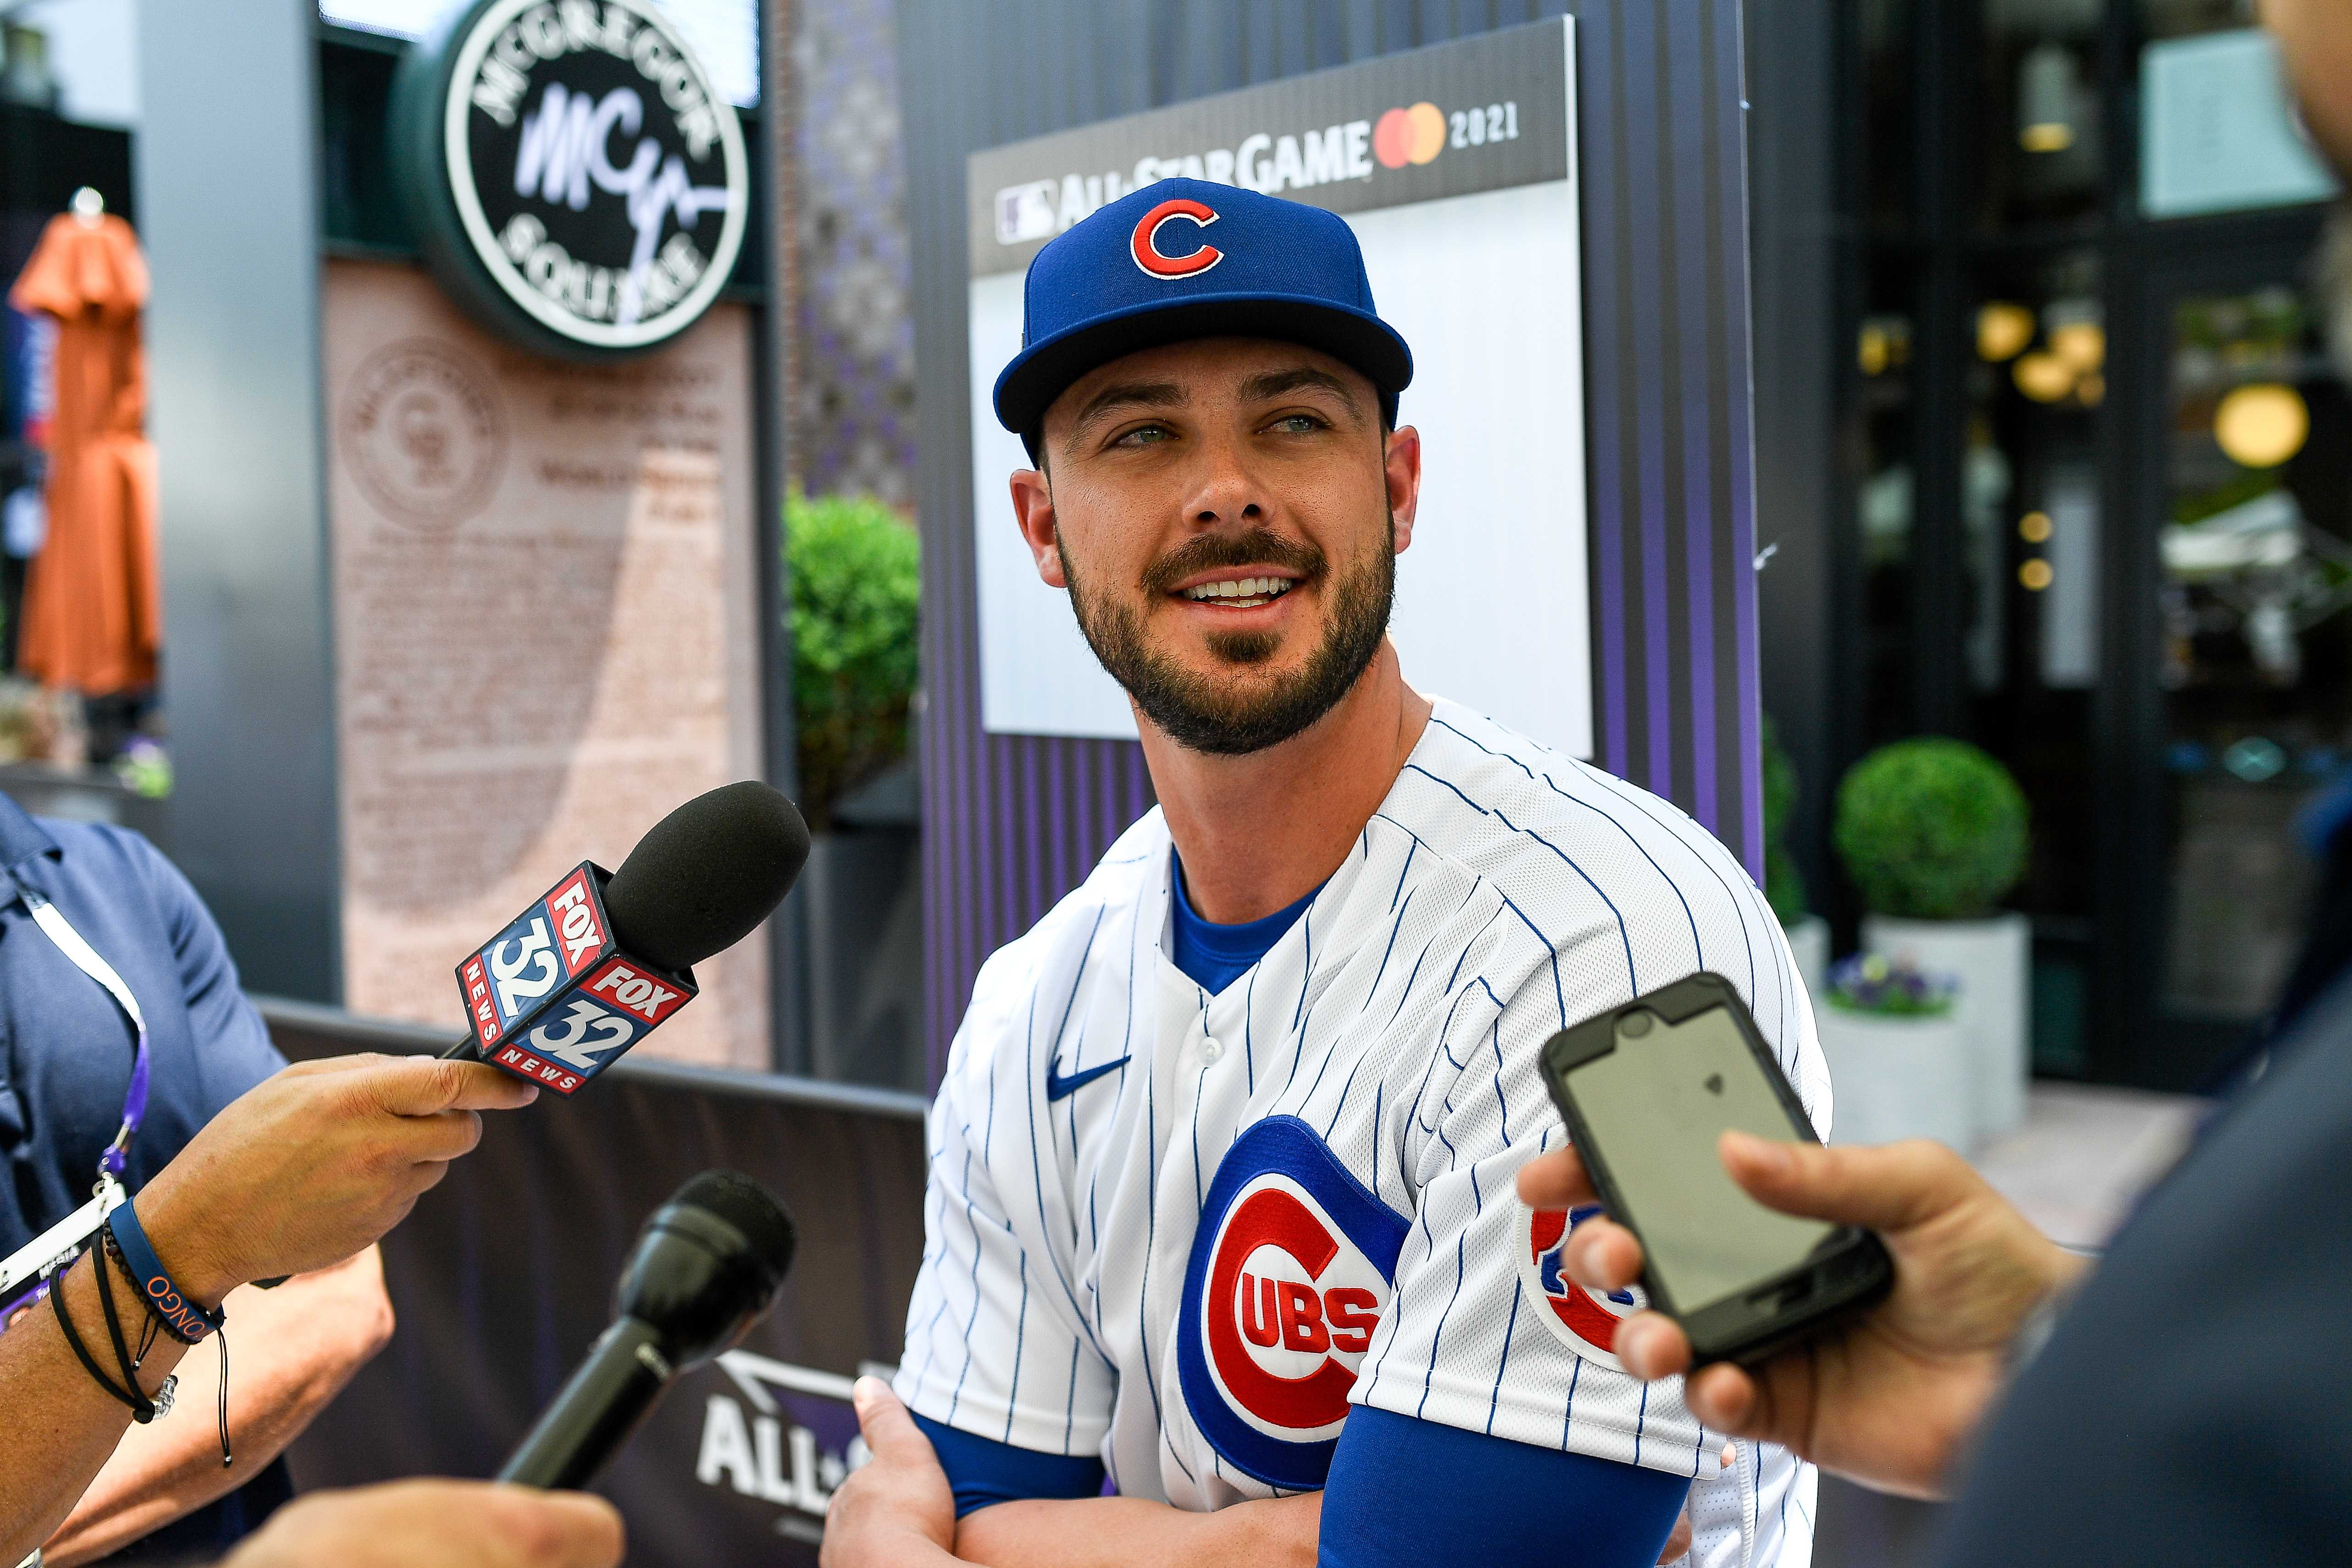 Cubs third baseman Kris Bryant talks to reporters during the All-Star workout day in Denver.